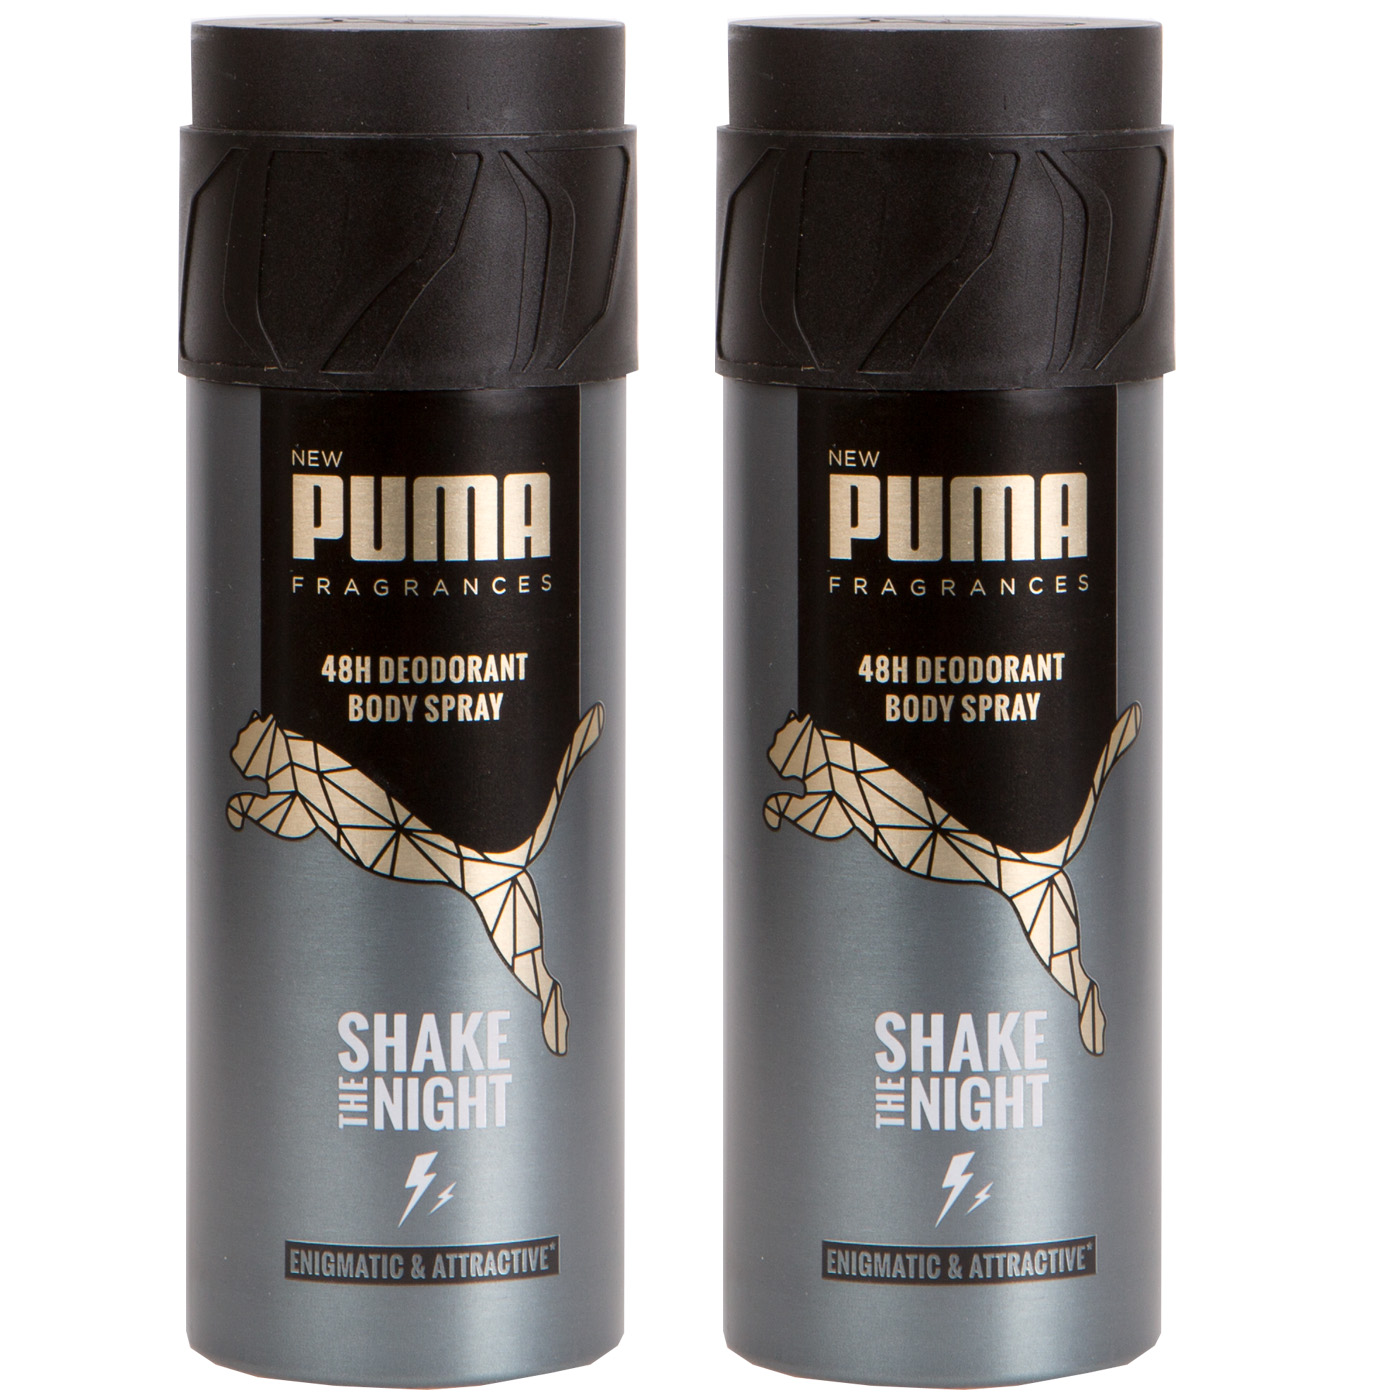 competitive price check out 100% quality Details about Puma 48H Deodorant Spray Body Spray Shake the Night 2 x 5,1oz  New